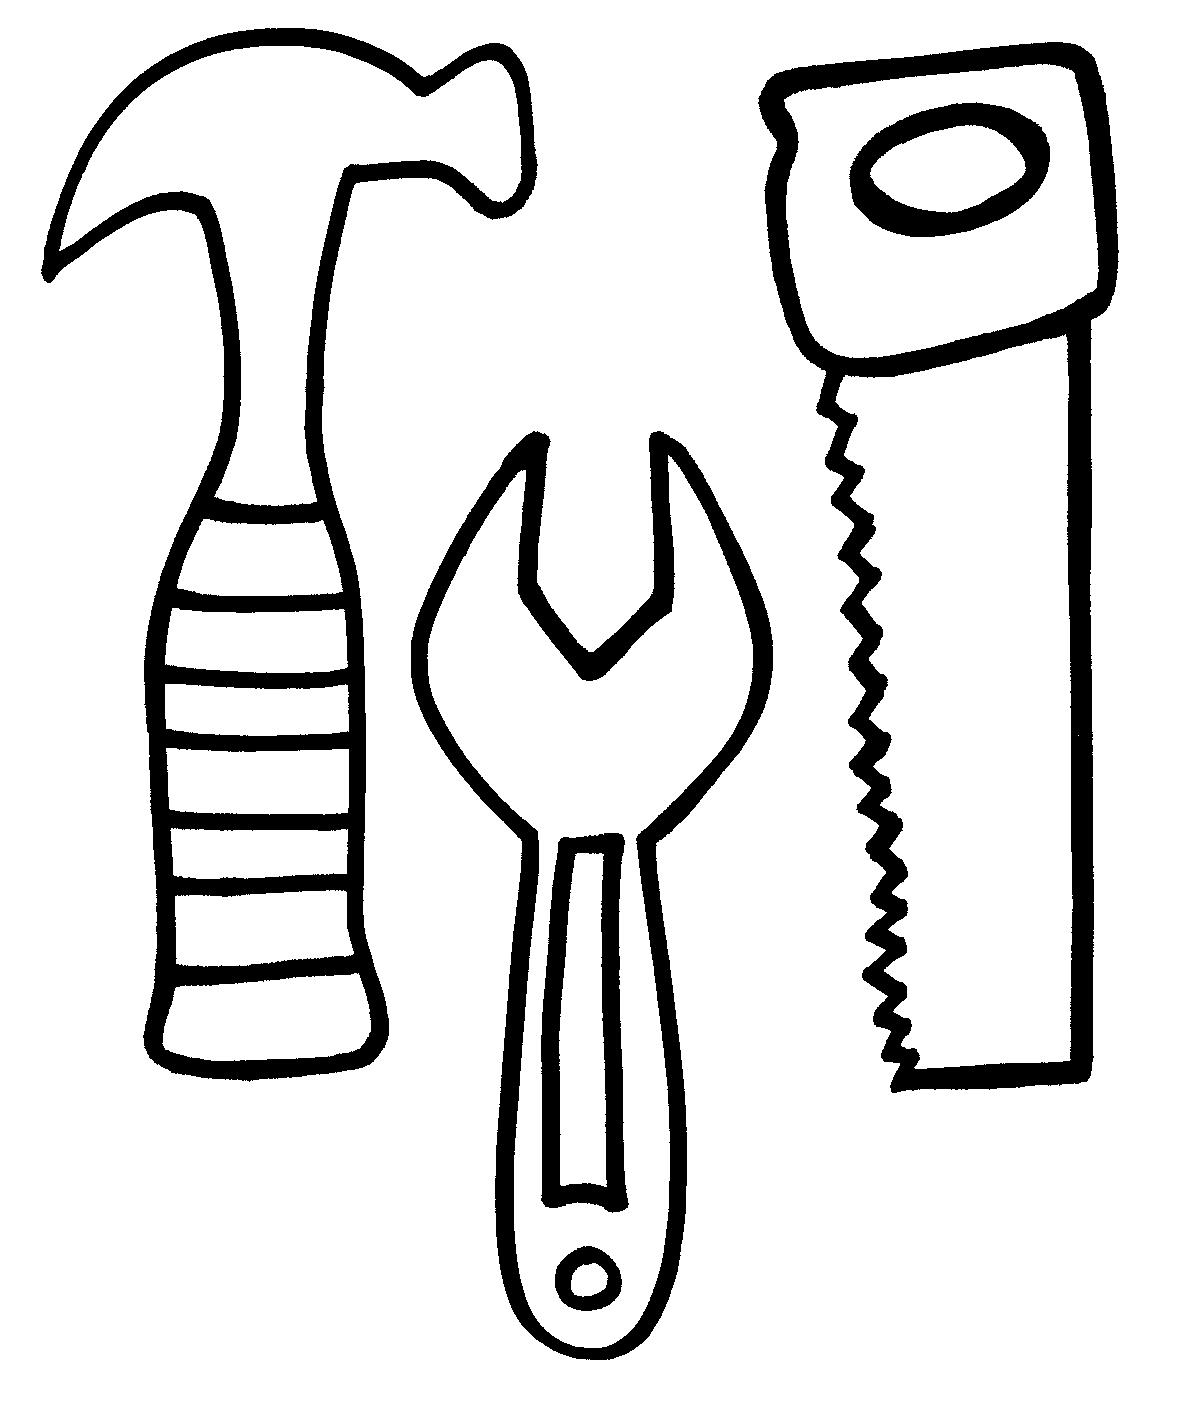 Tools Coloring Pages - the Gallery for tools Coloring Page